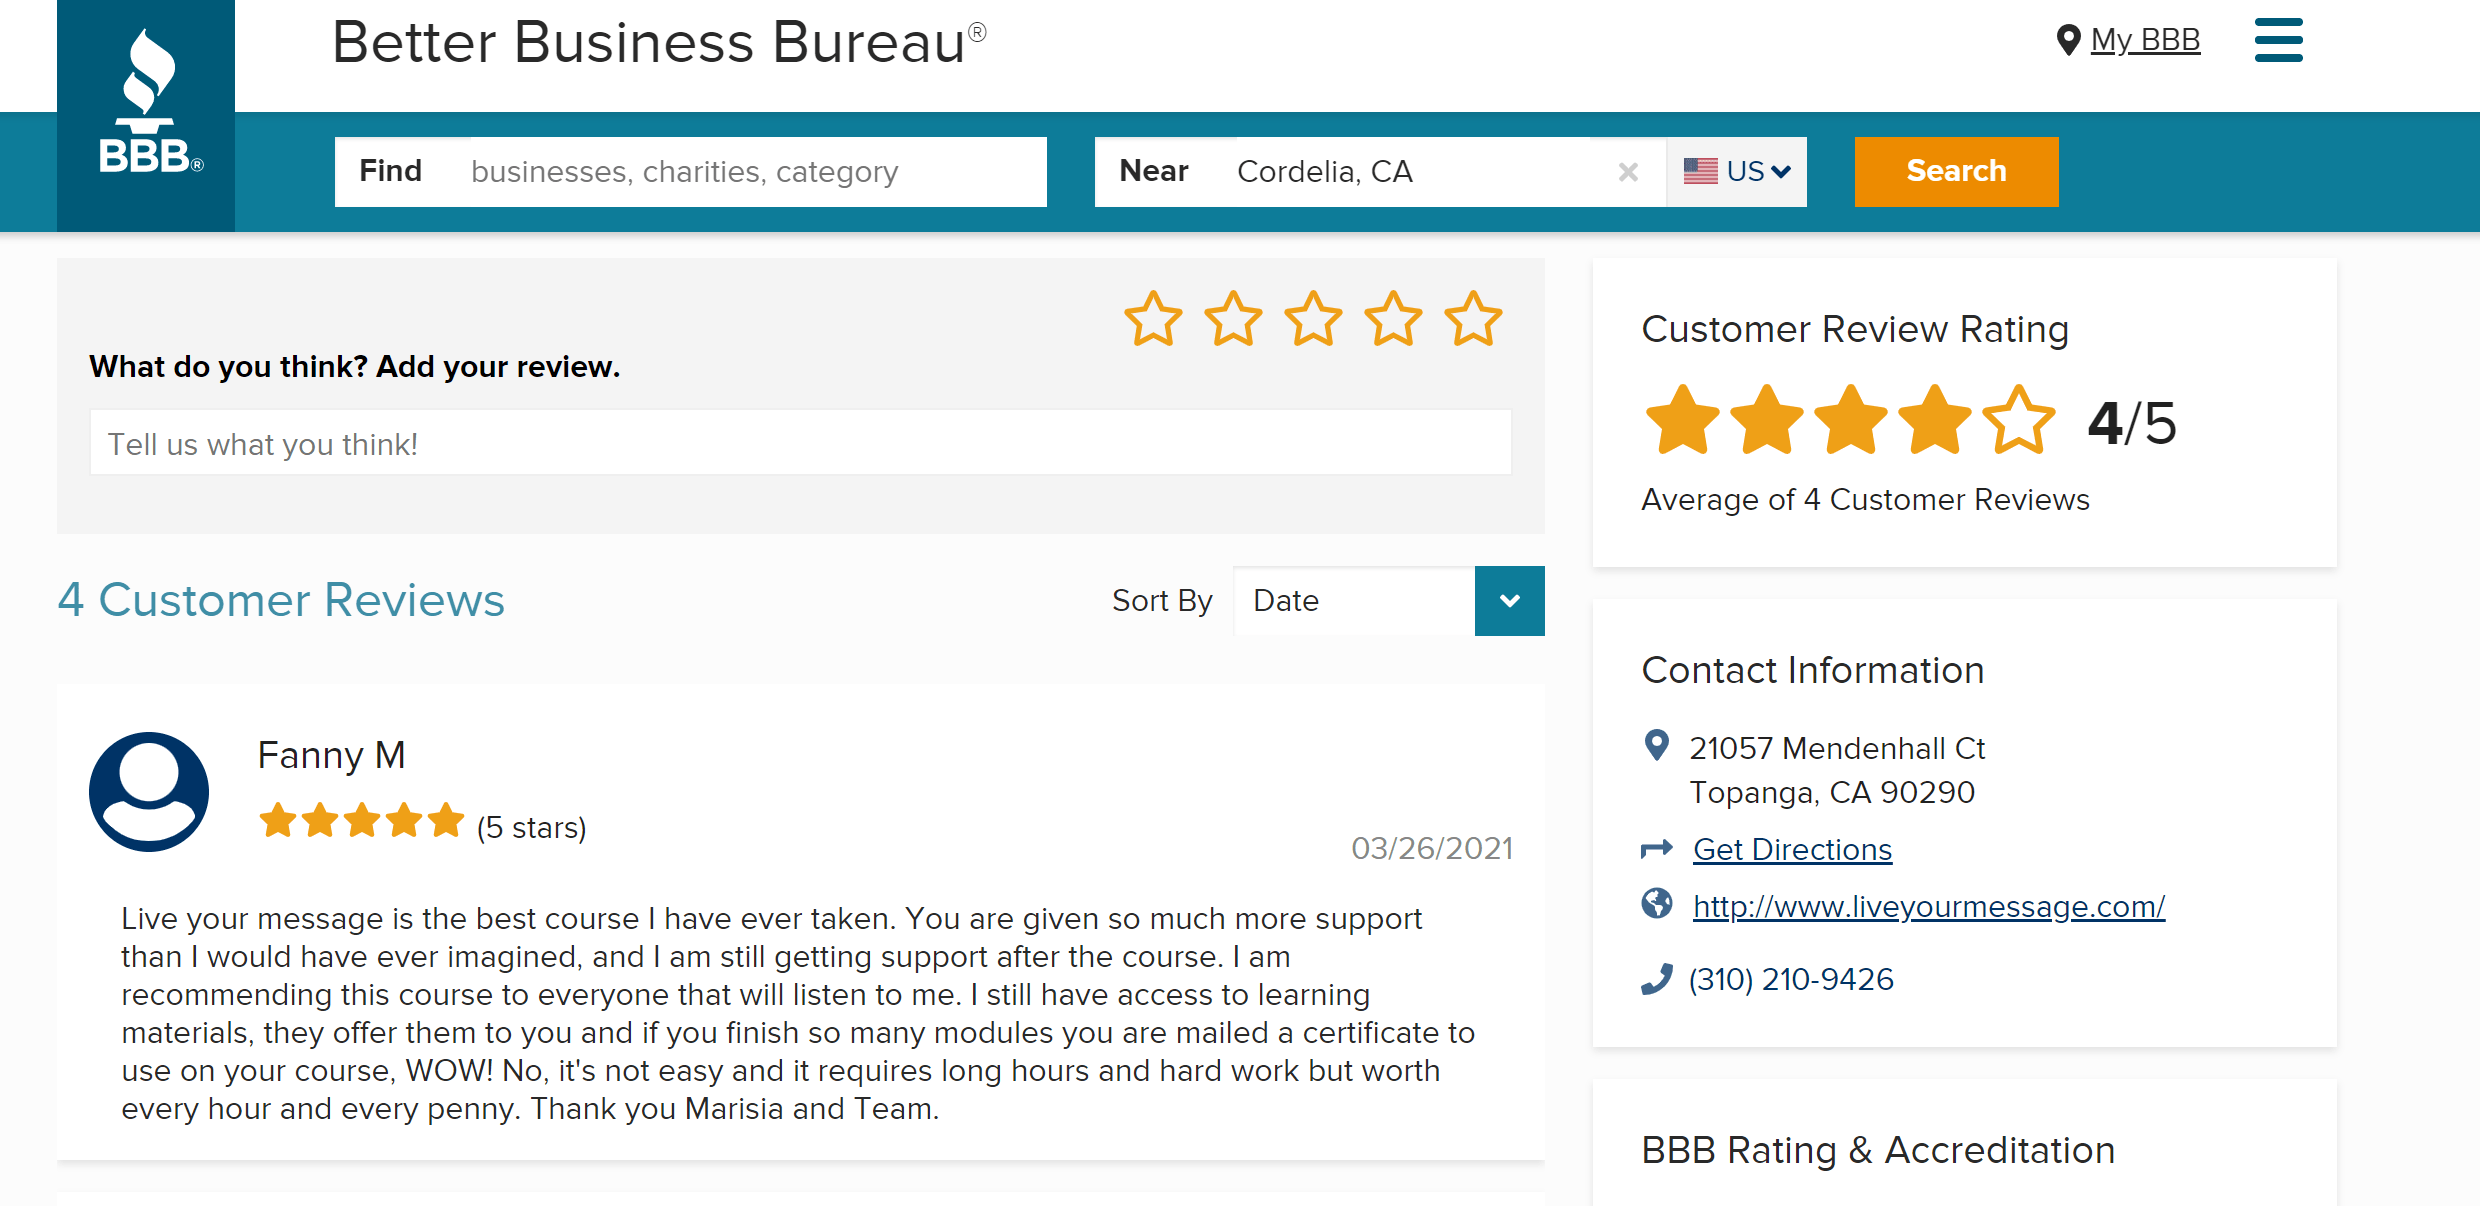 Experience-Product-Masterclass-Review by Marisa